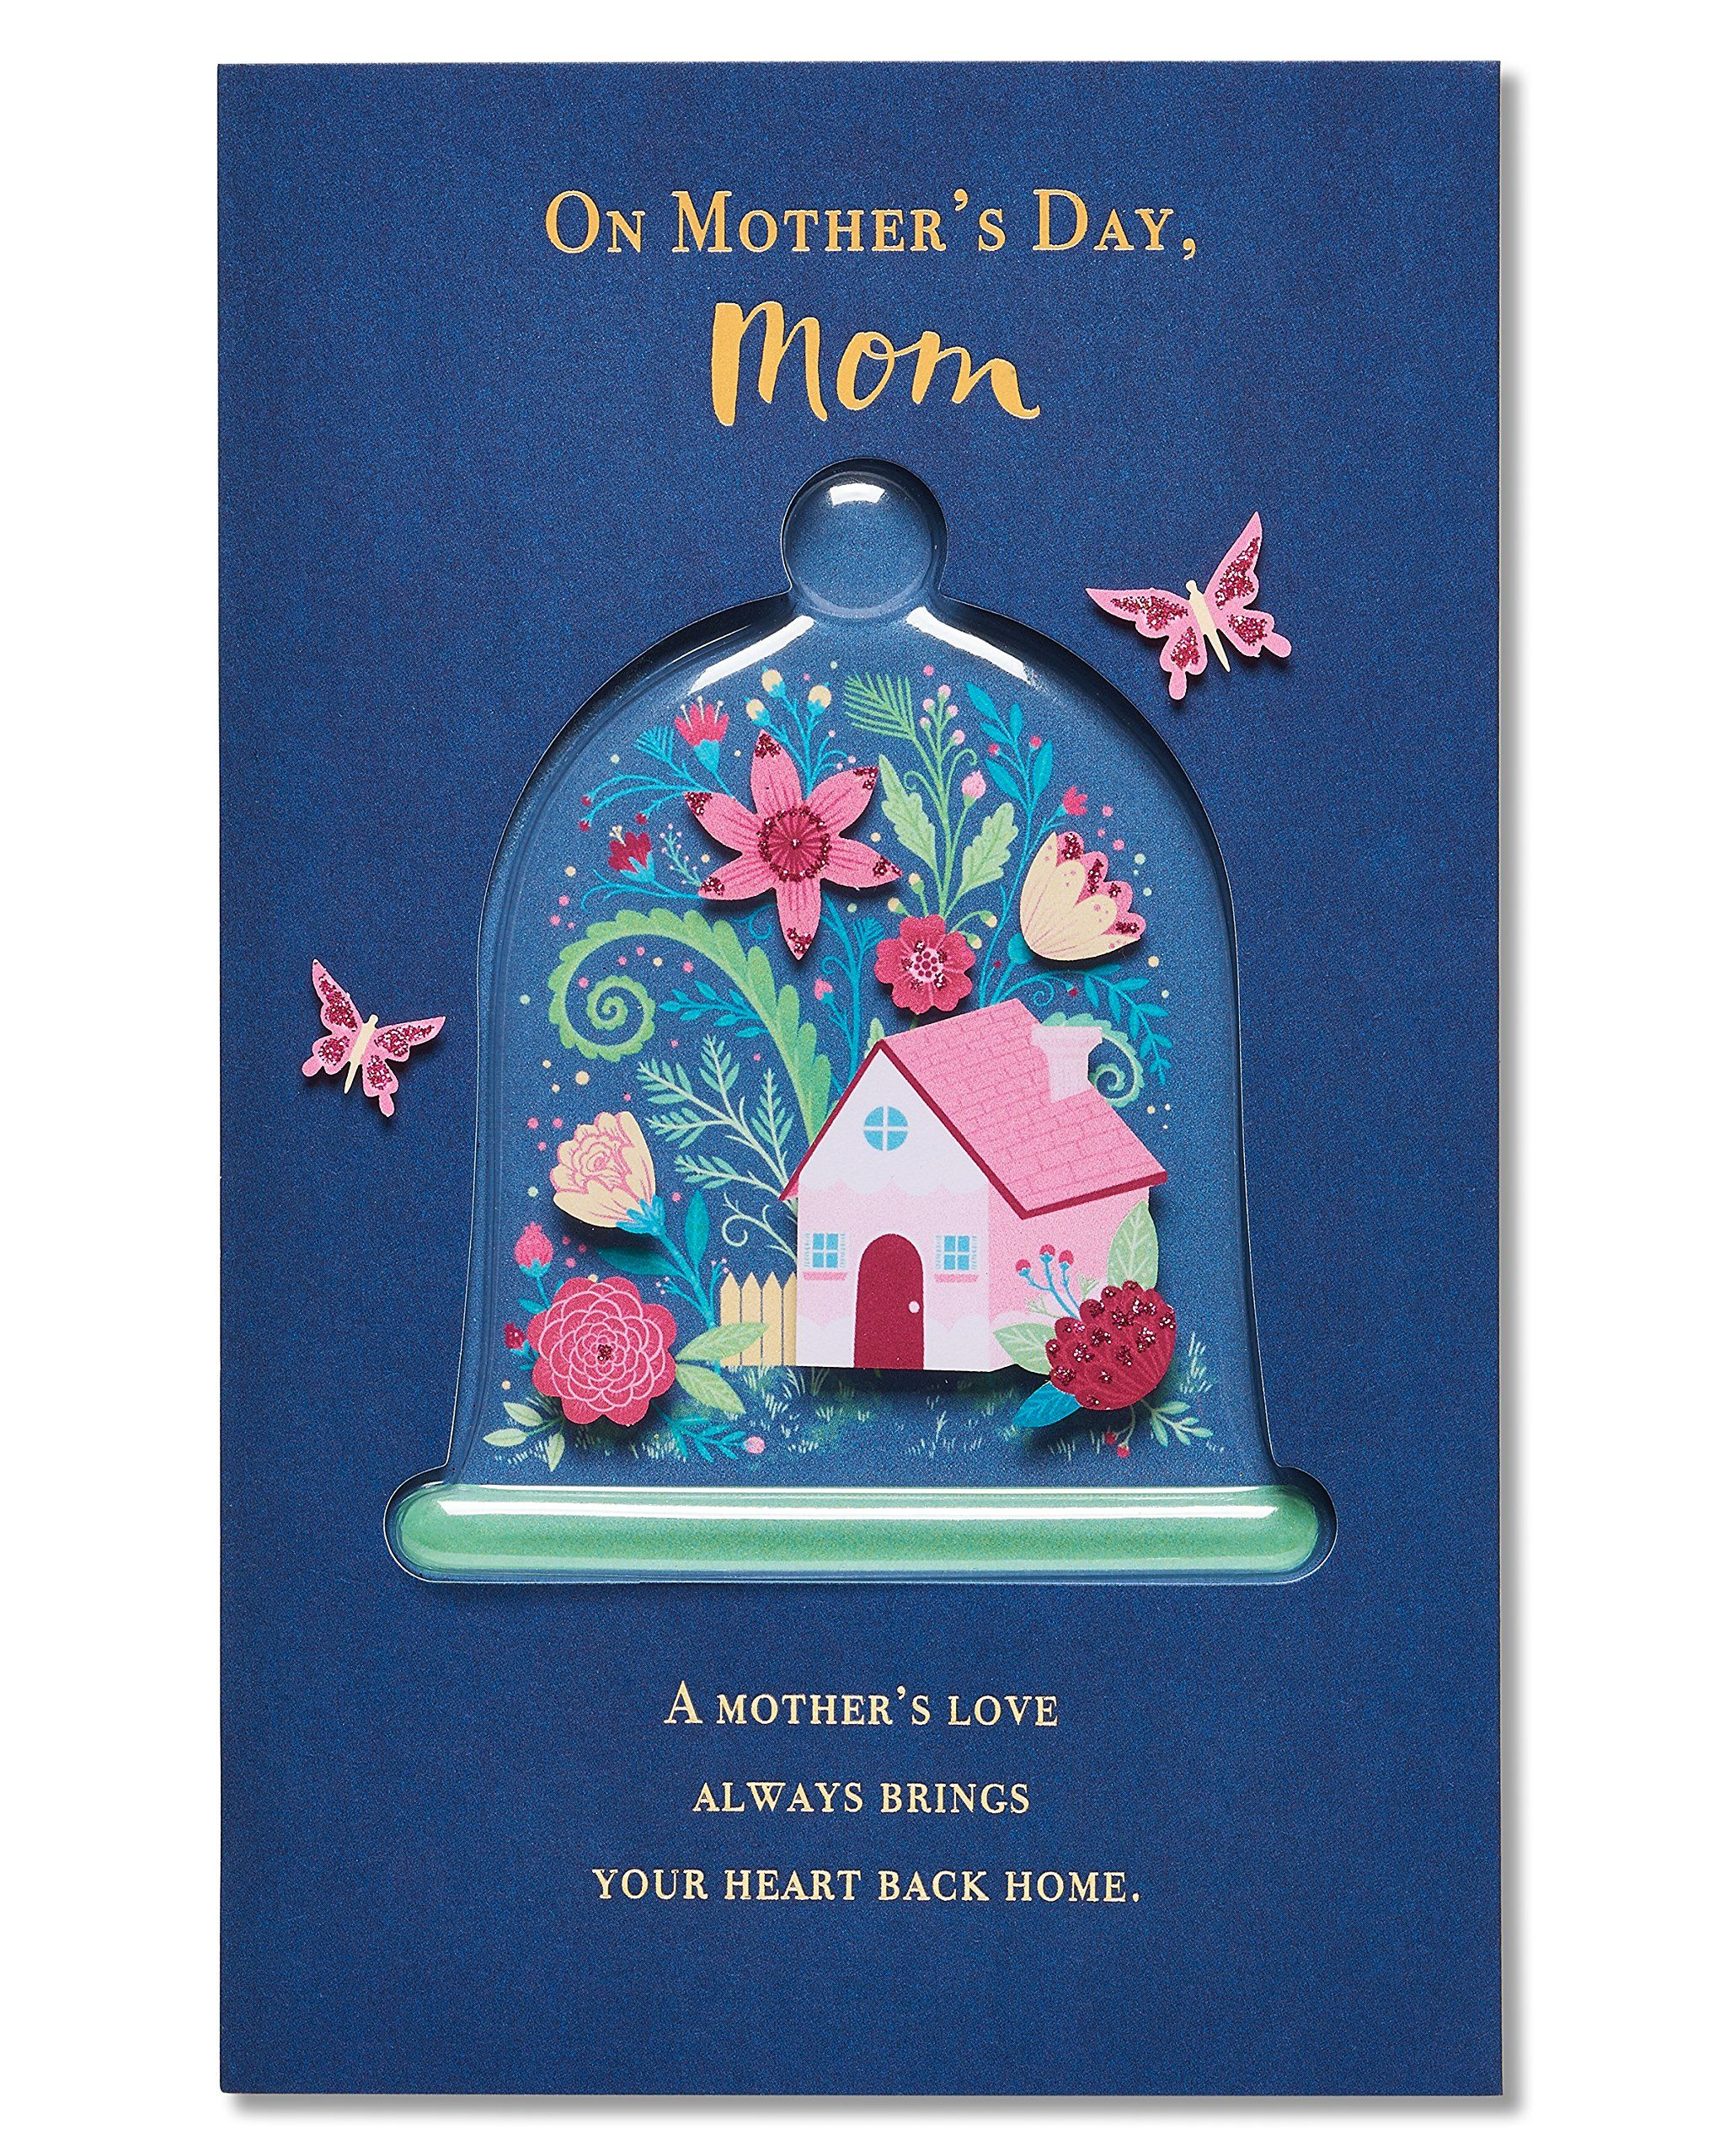 American greetings always love you mothers day card with glitter american greetings always love you mothers day card with glitter 5856848 kristyandbryce Choice Image